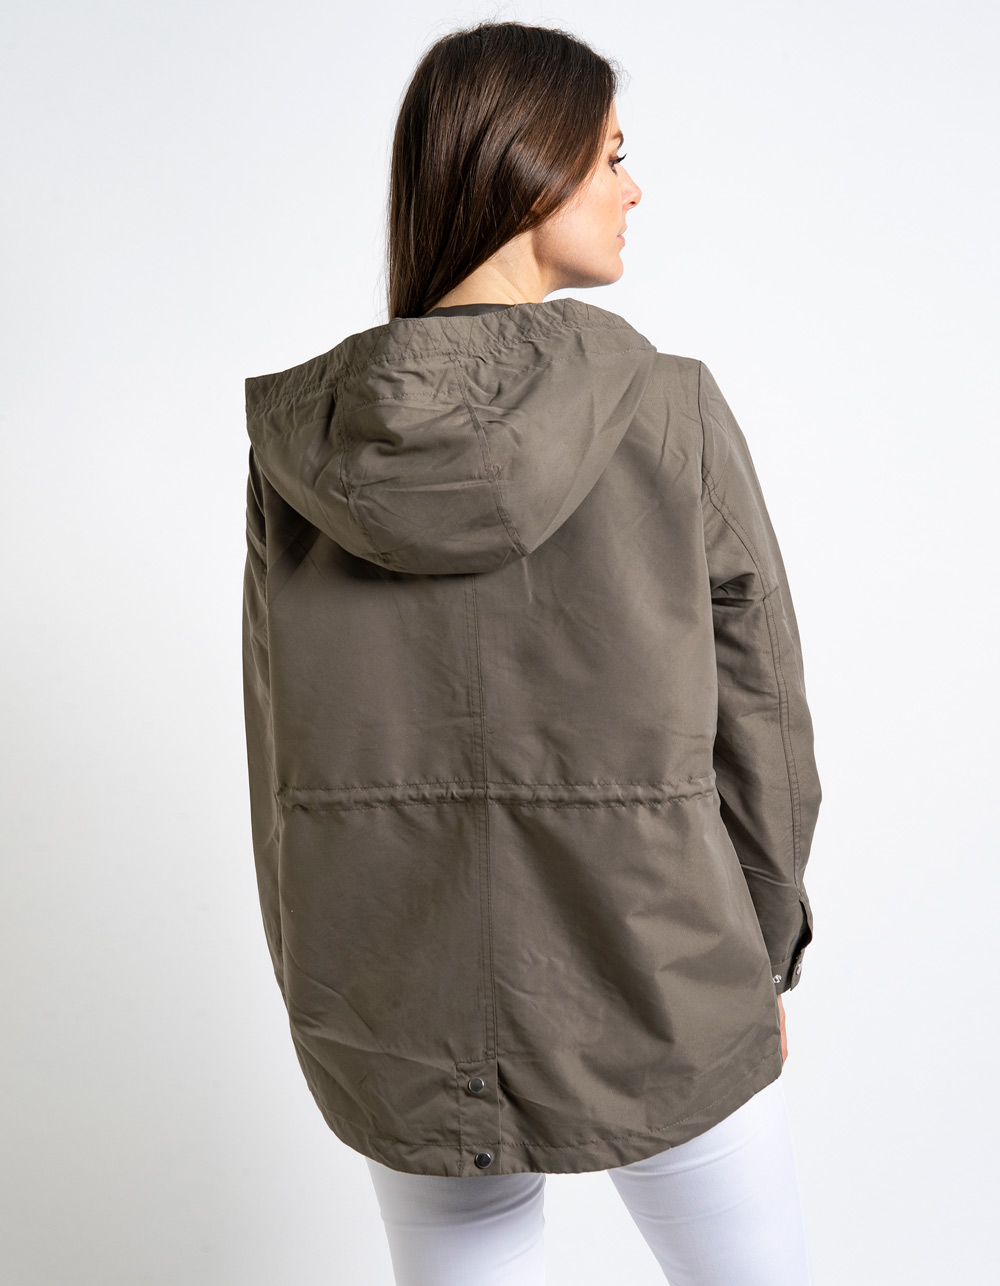 Chaqueta con capucha - Backside